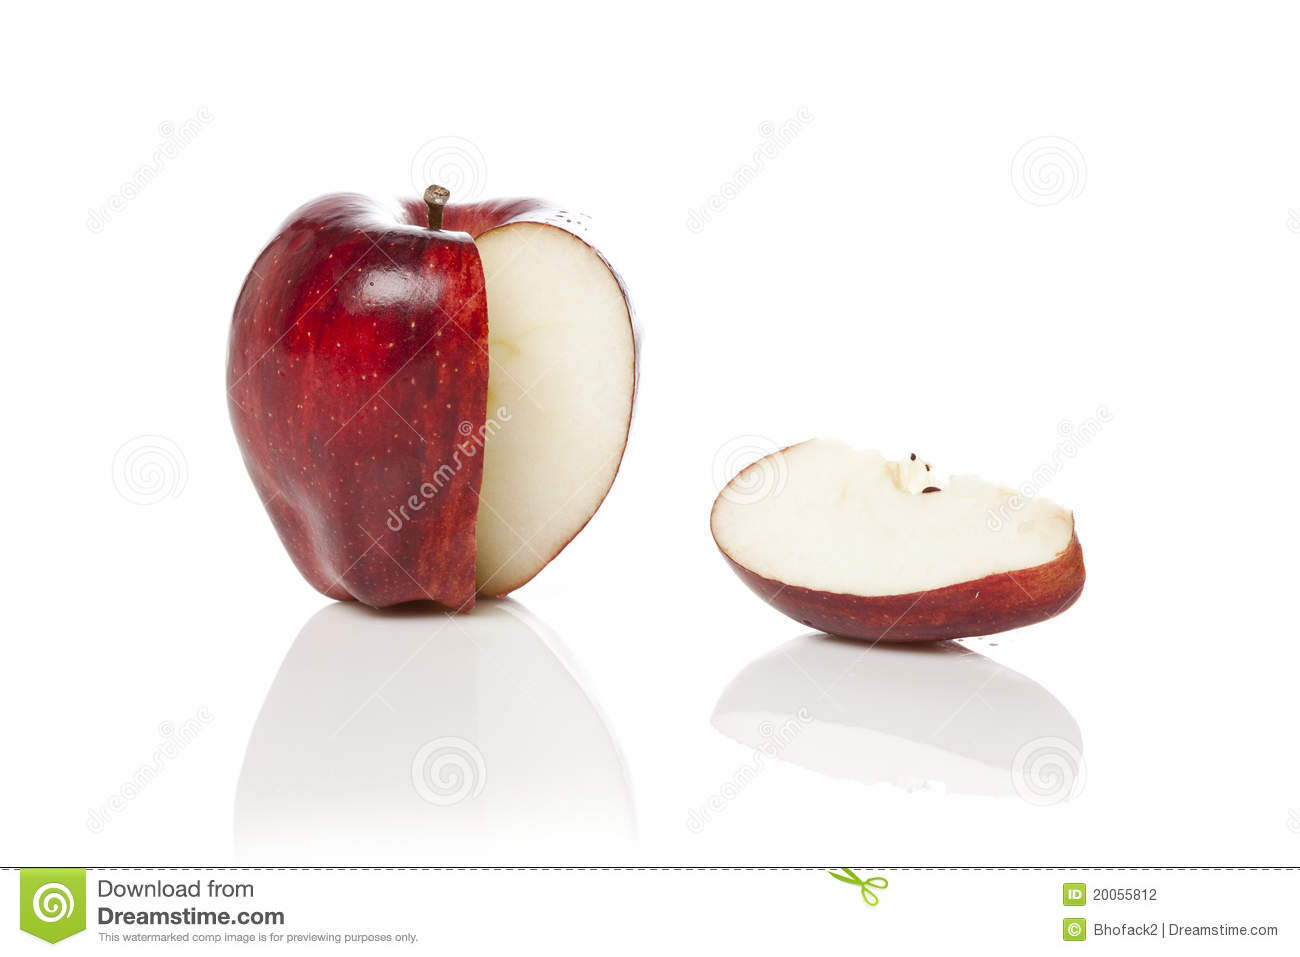 red apple slice. royalty-free stock photo. download a fresh red apple with slice d